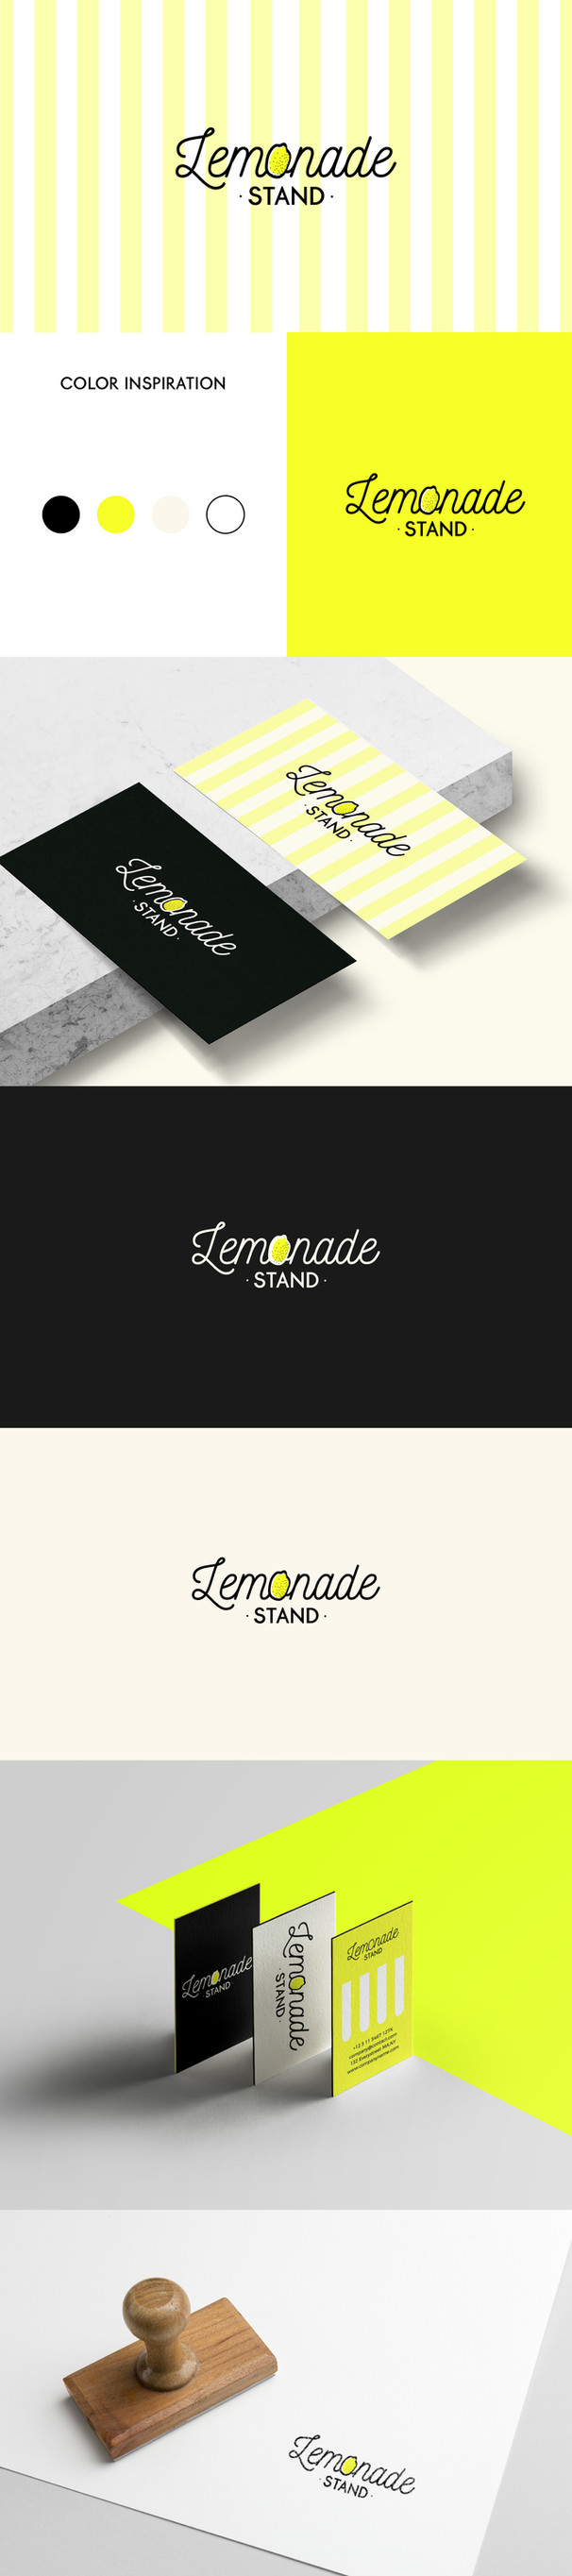 LEMONADE STAND LOGO DESIGN